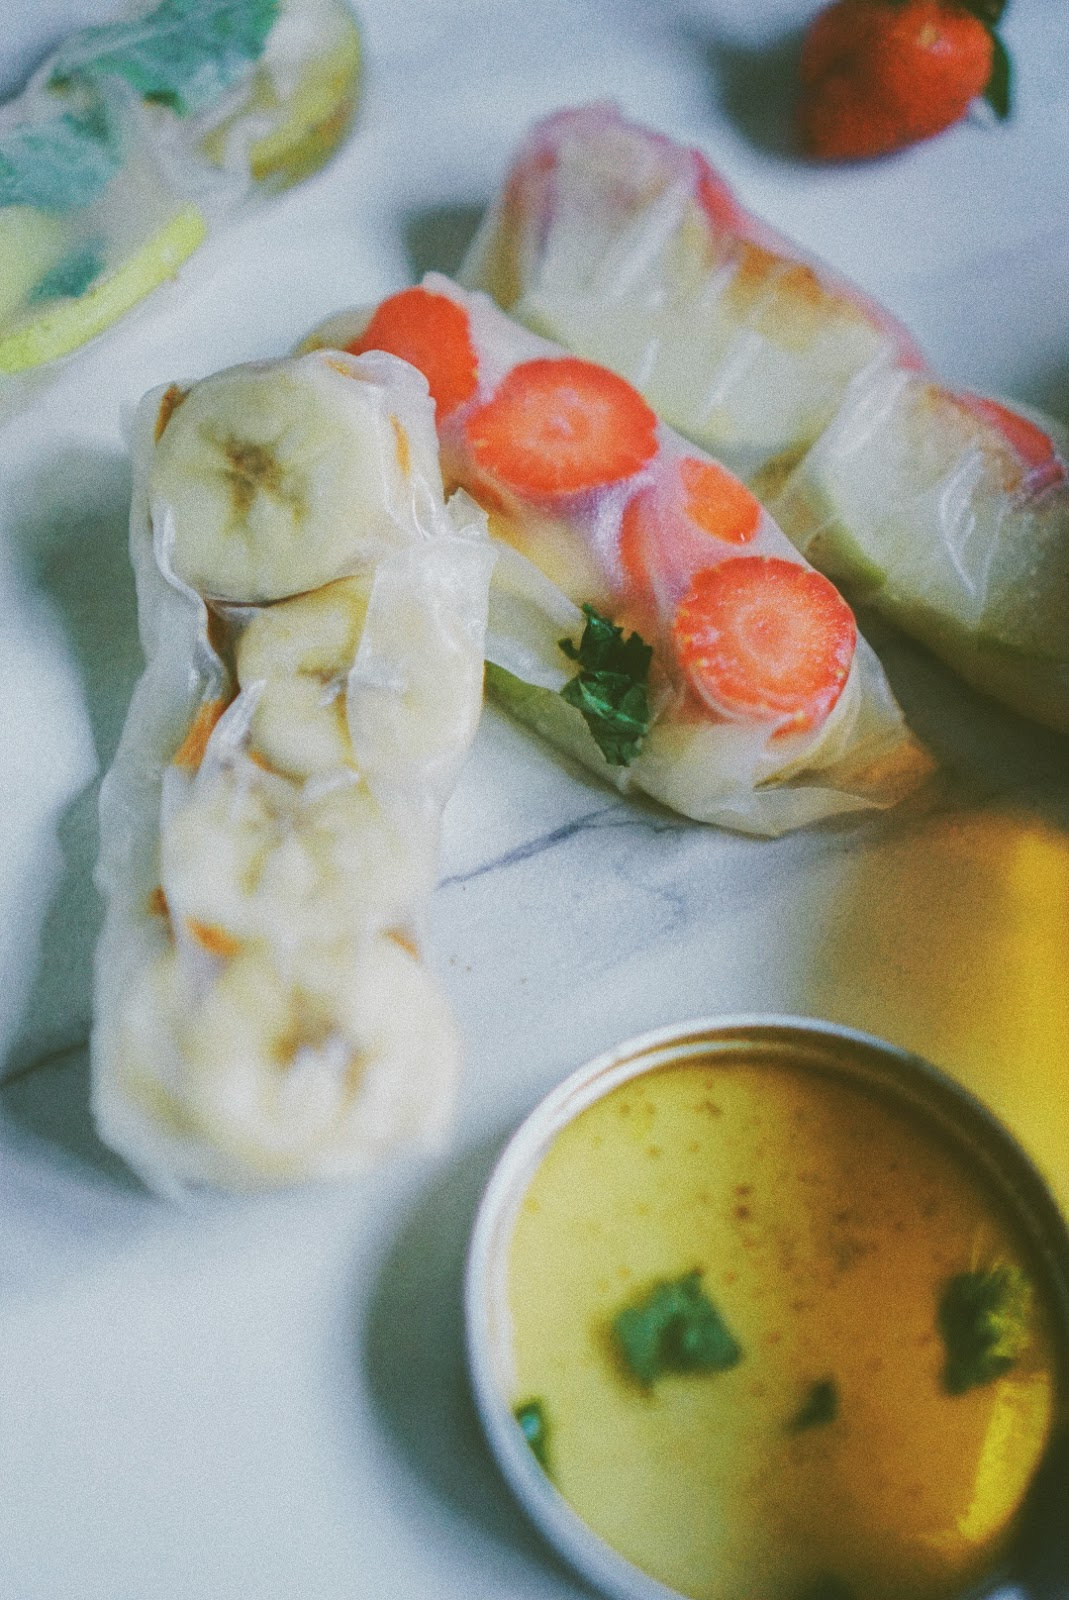 Resep Fruit Spring Roll + Honey-Lemon-Mint Dipping Sauce